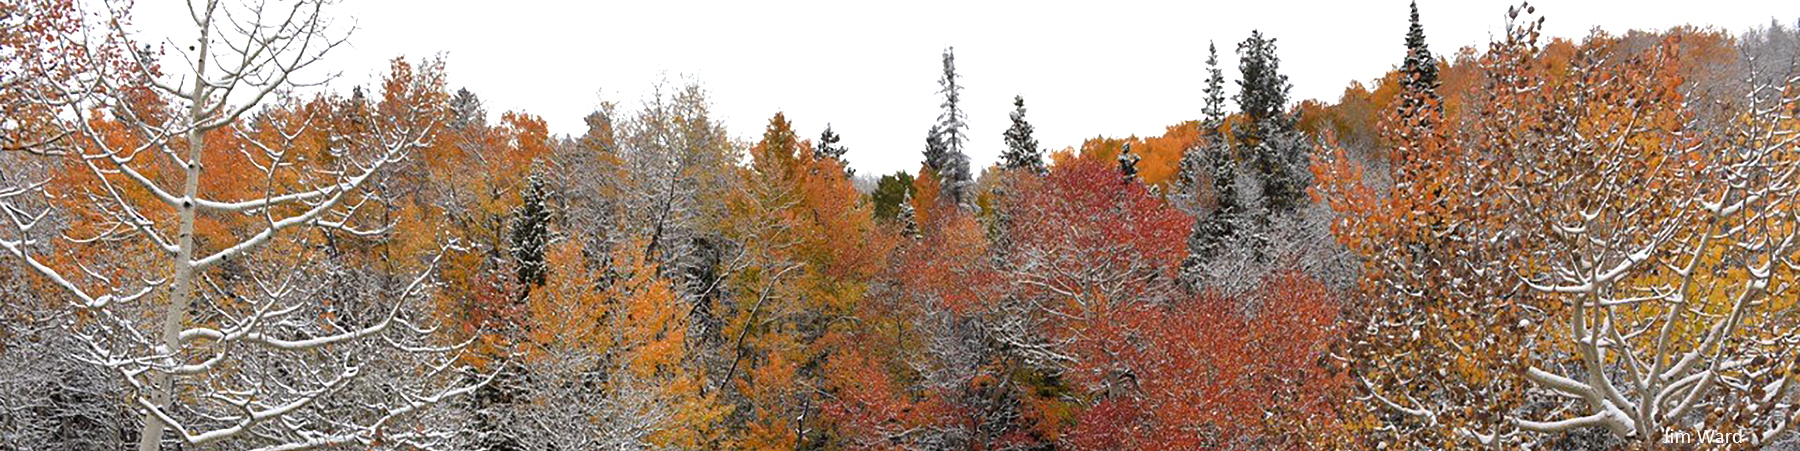 Autumn color snow J Ward f